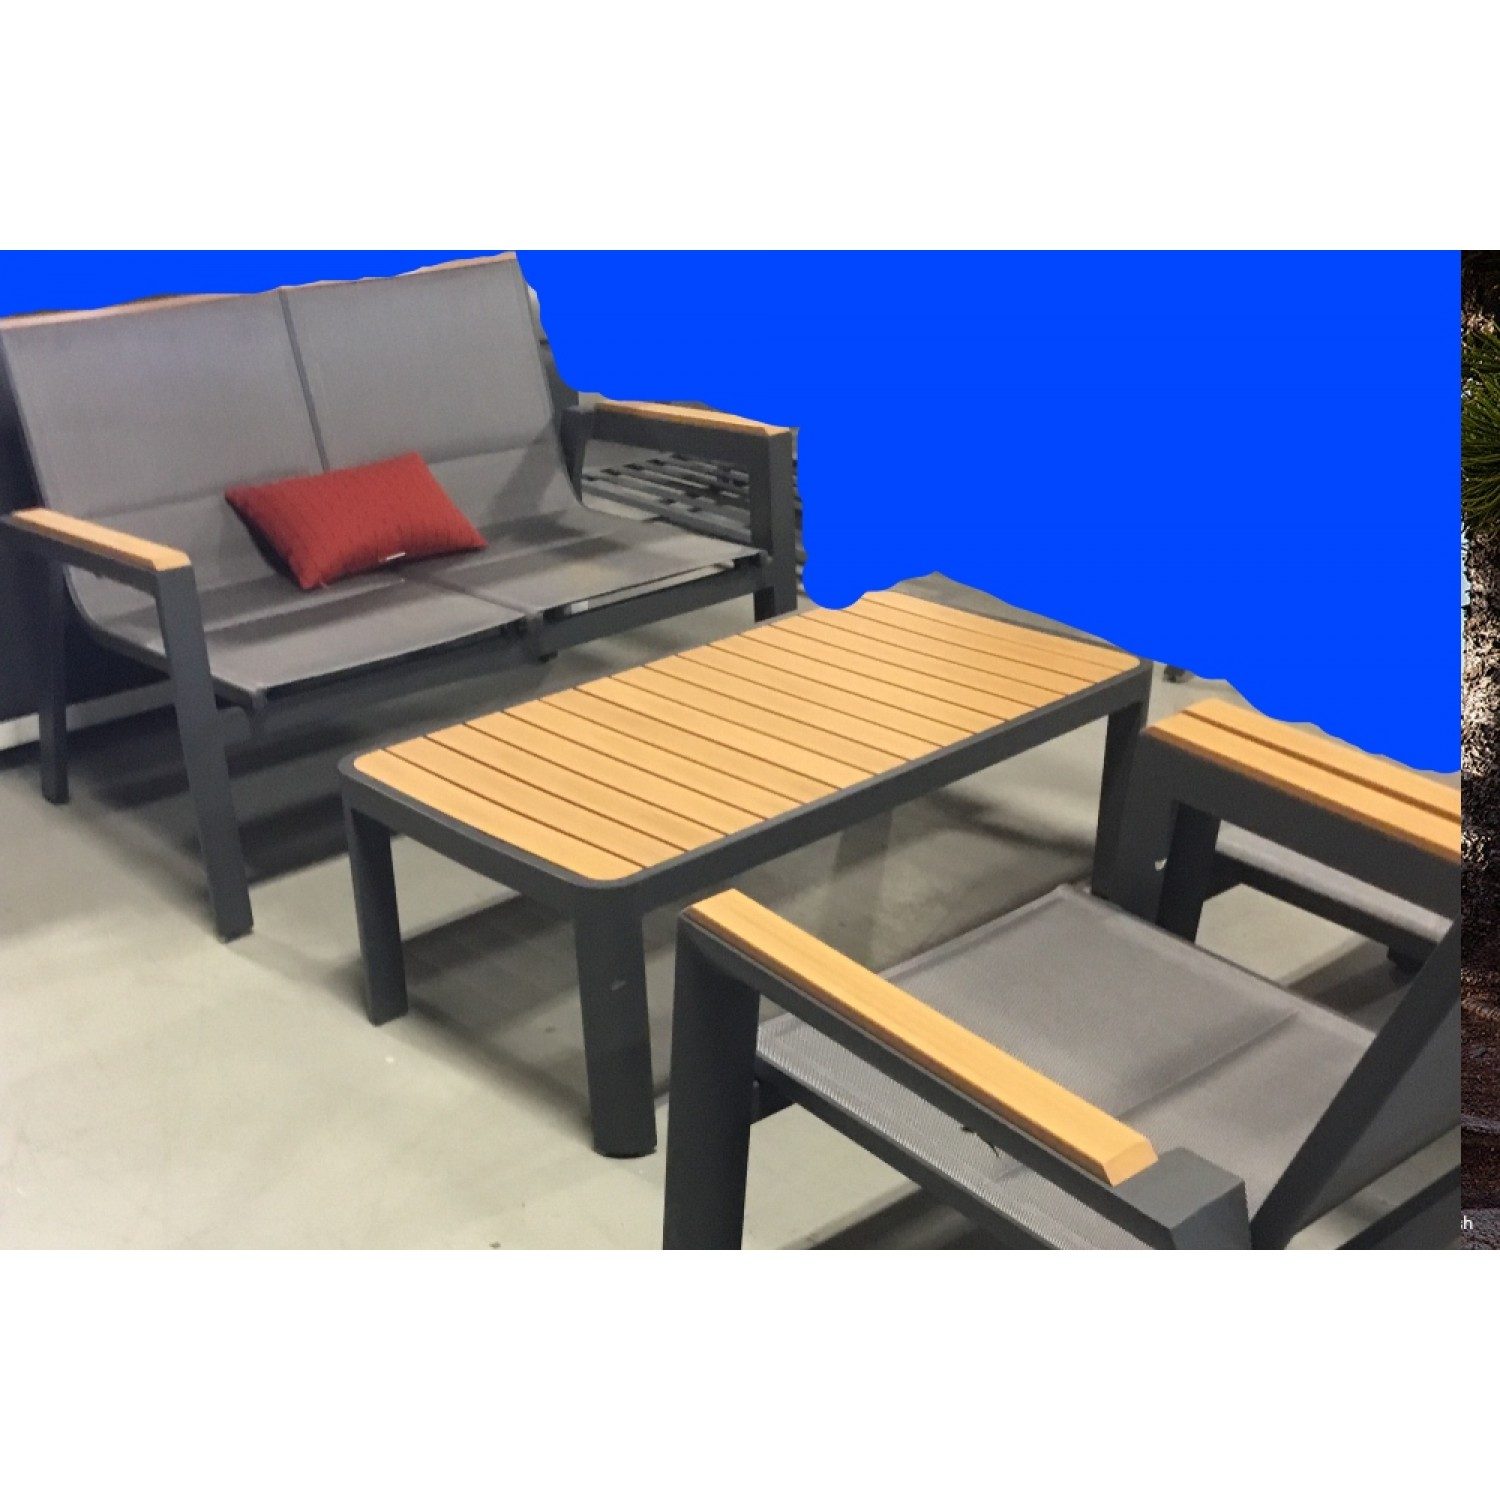 Medeira Outdoor Love Seat Set